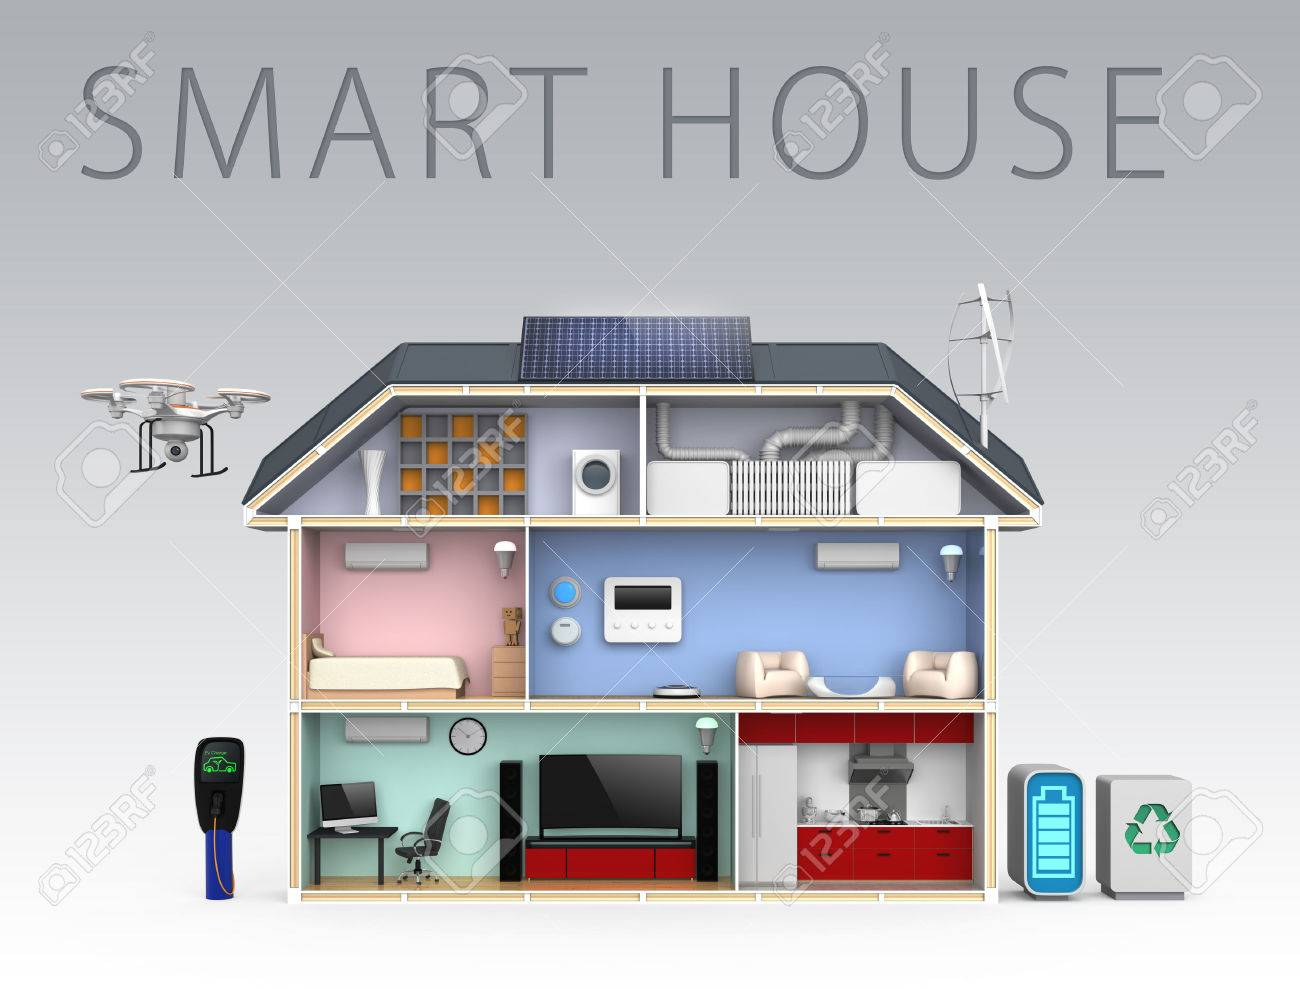 Smart House smart house with energy efficient appliances with text stock photo